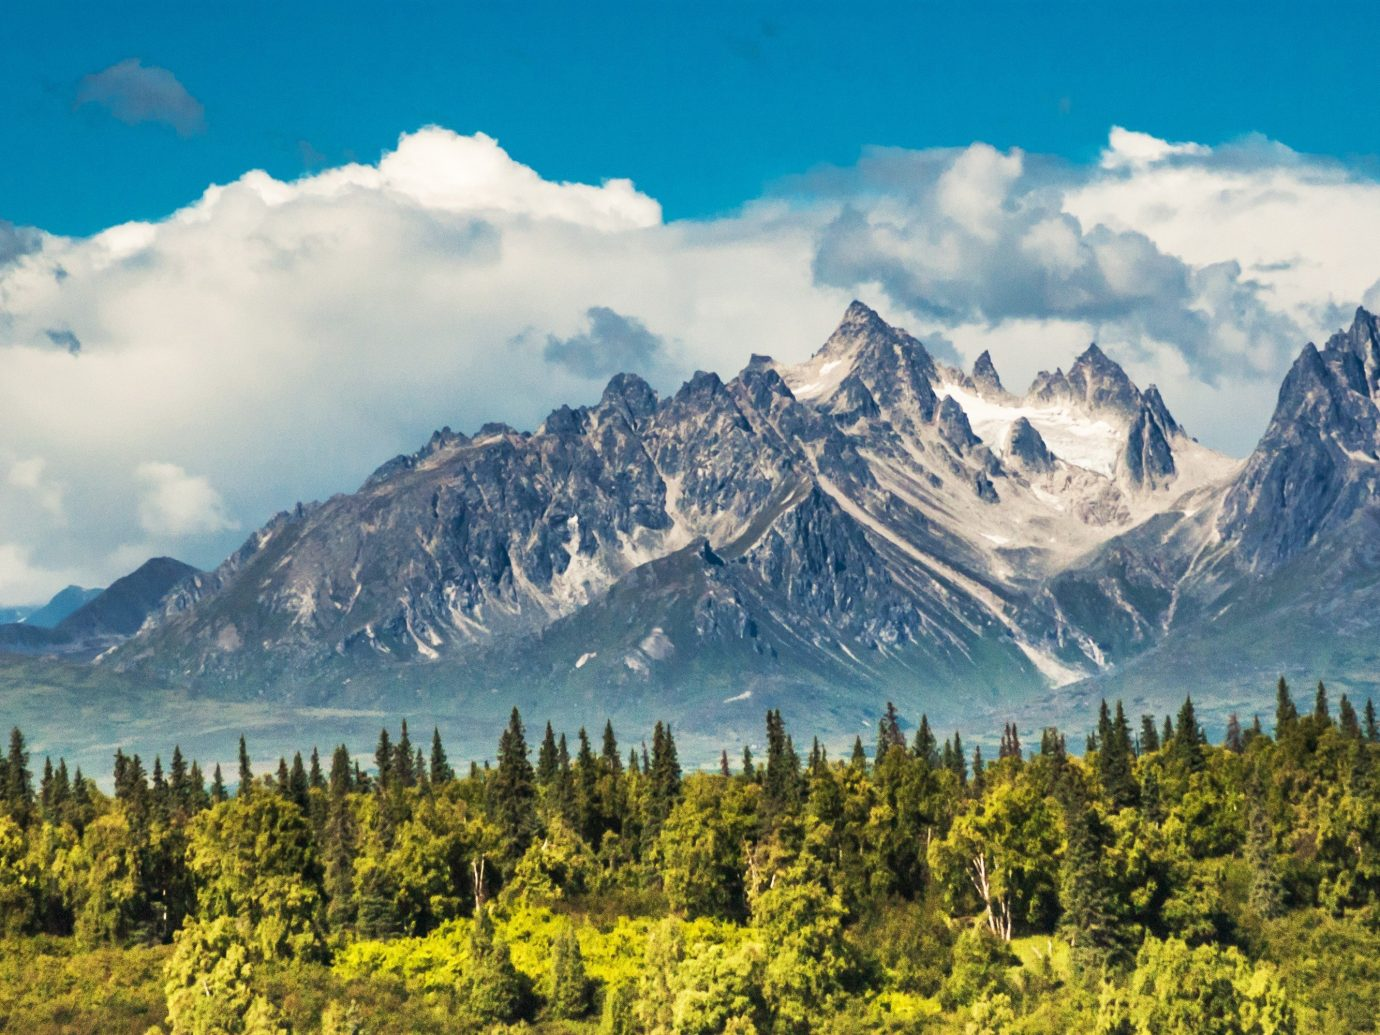 Mountains + Skiing Trip Ideas mountain sky outdoor mountainous landforms tree mountain range Nature geographical feature landform wilderness ecosystem ridge cloud valley alps background landscape plateau meadow national park mountain pass plant hillside lush highland